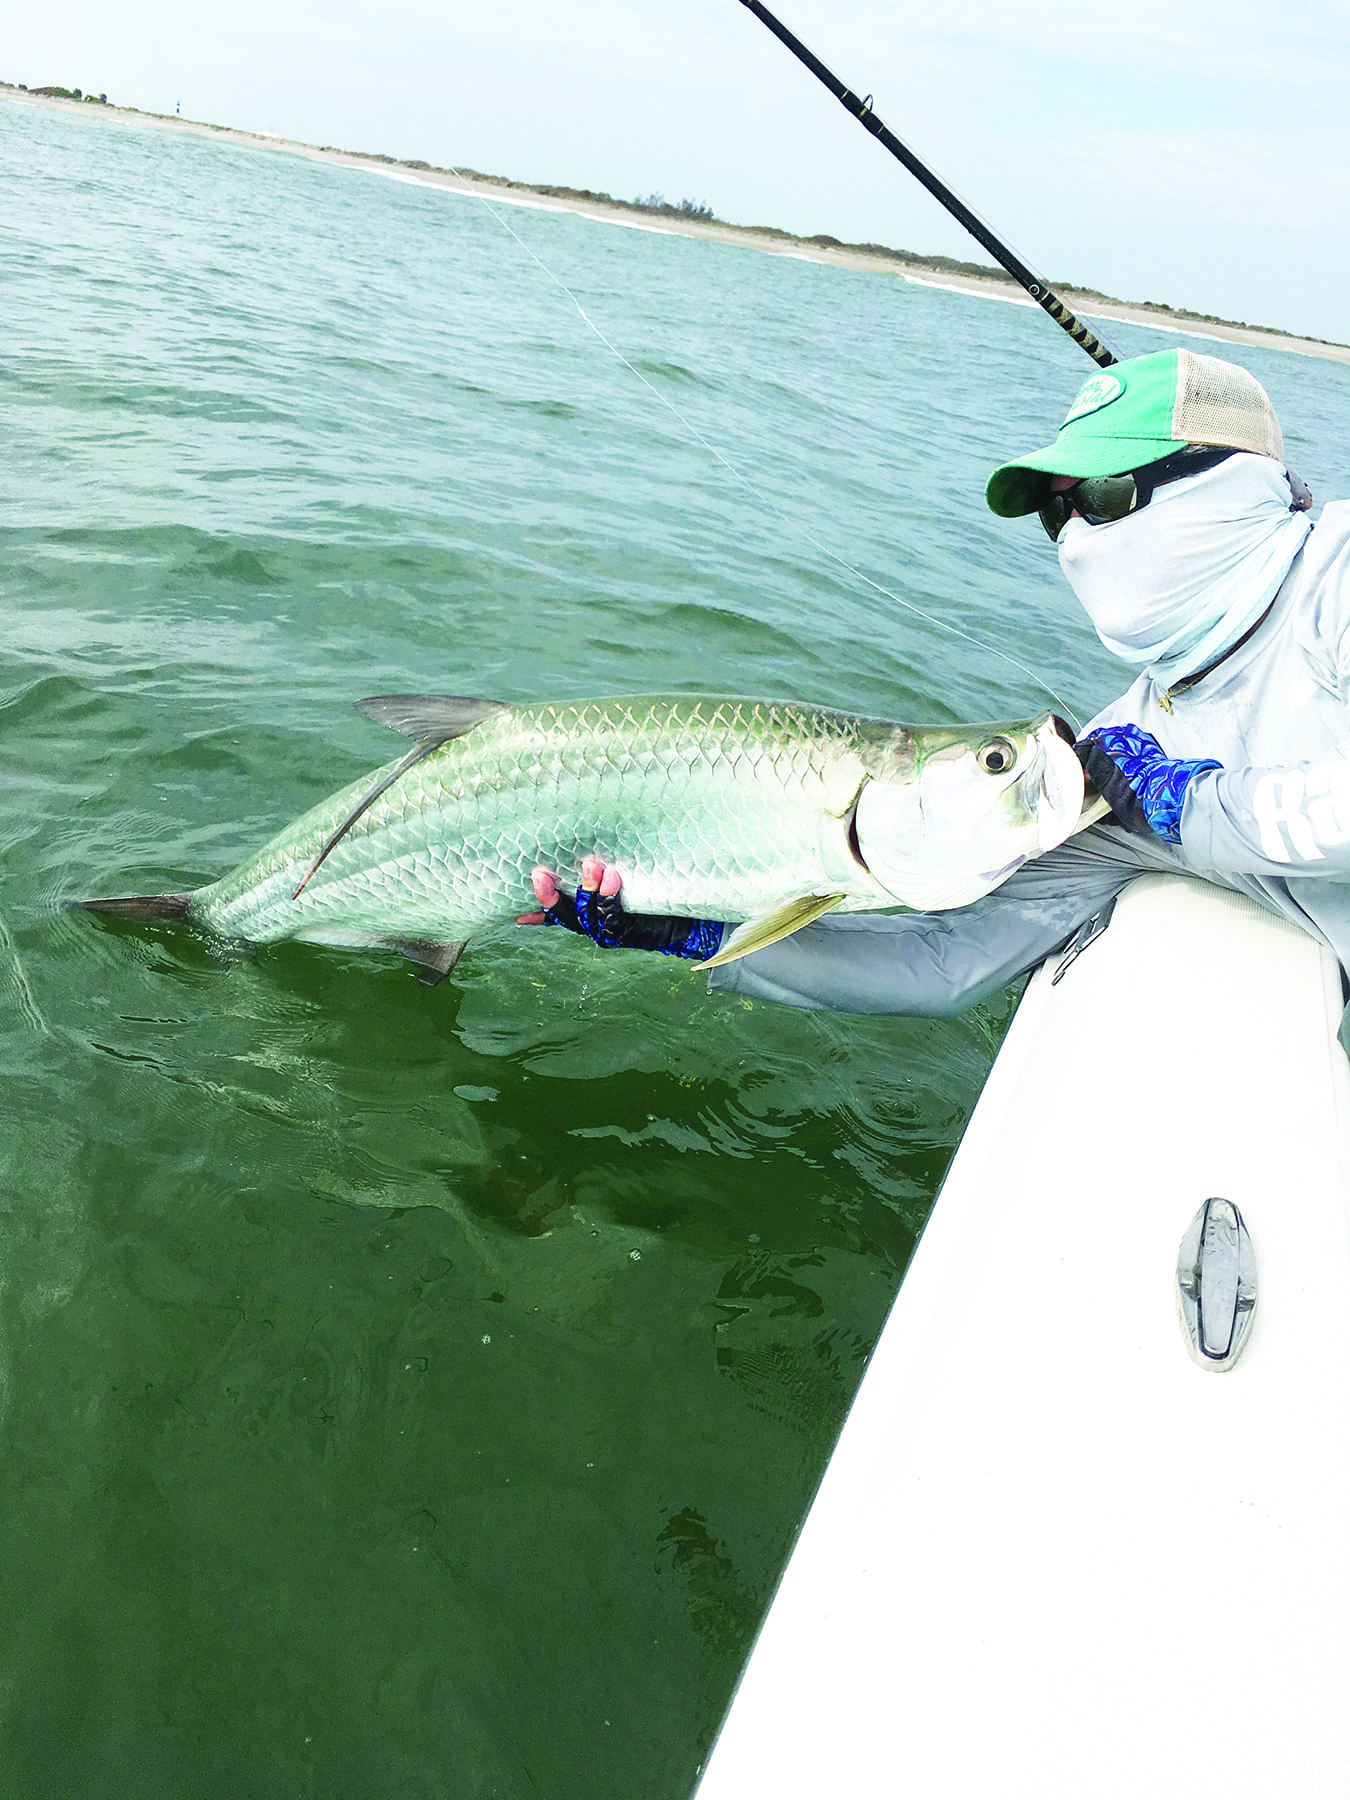 If the water conditions stay fairly warm, Baby tarpon may be one of the species anglers can expect at Canaveral this month.